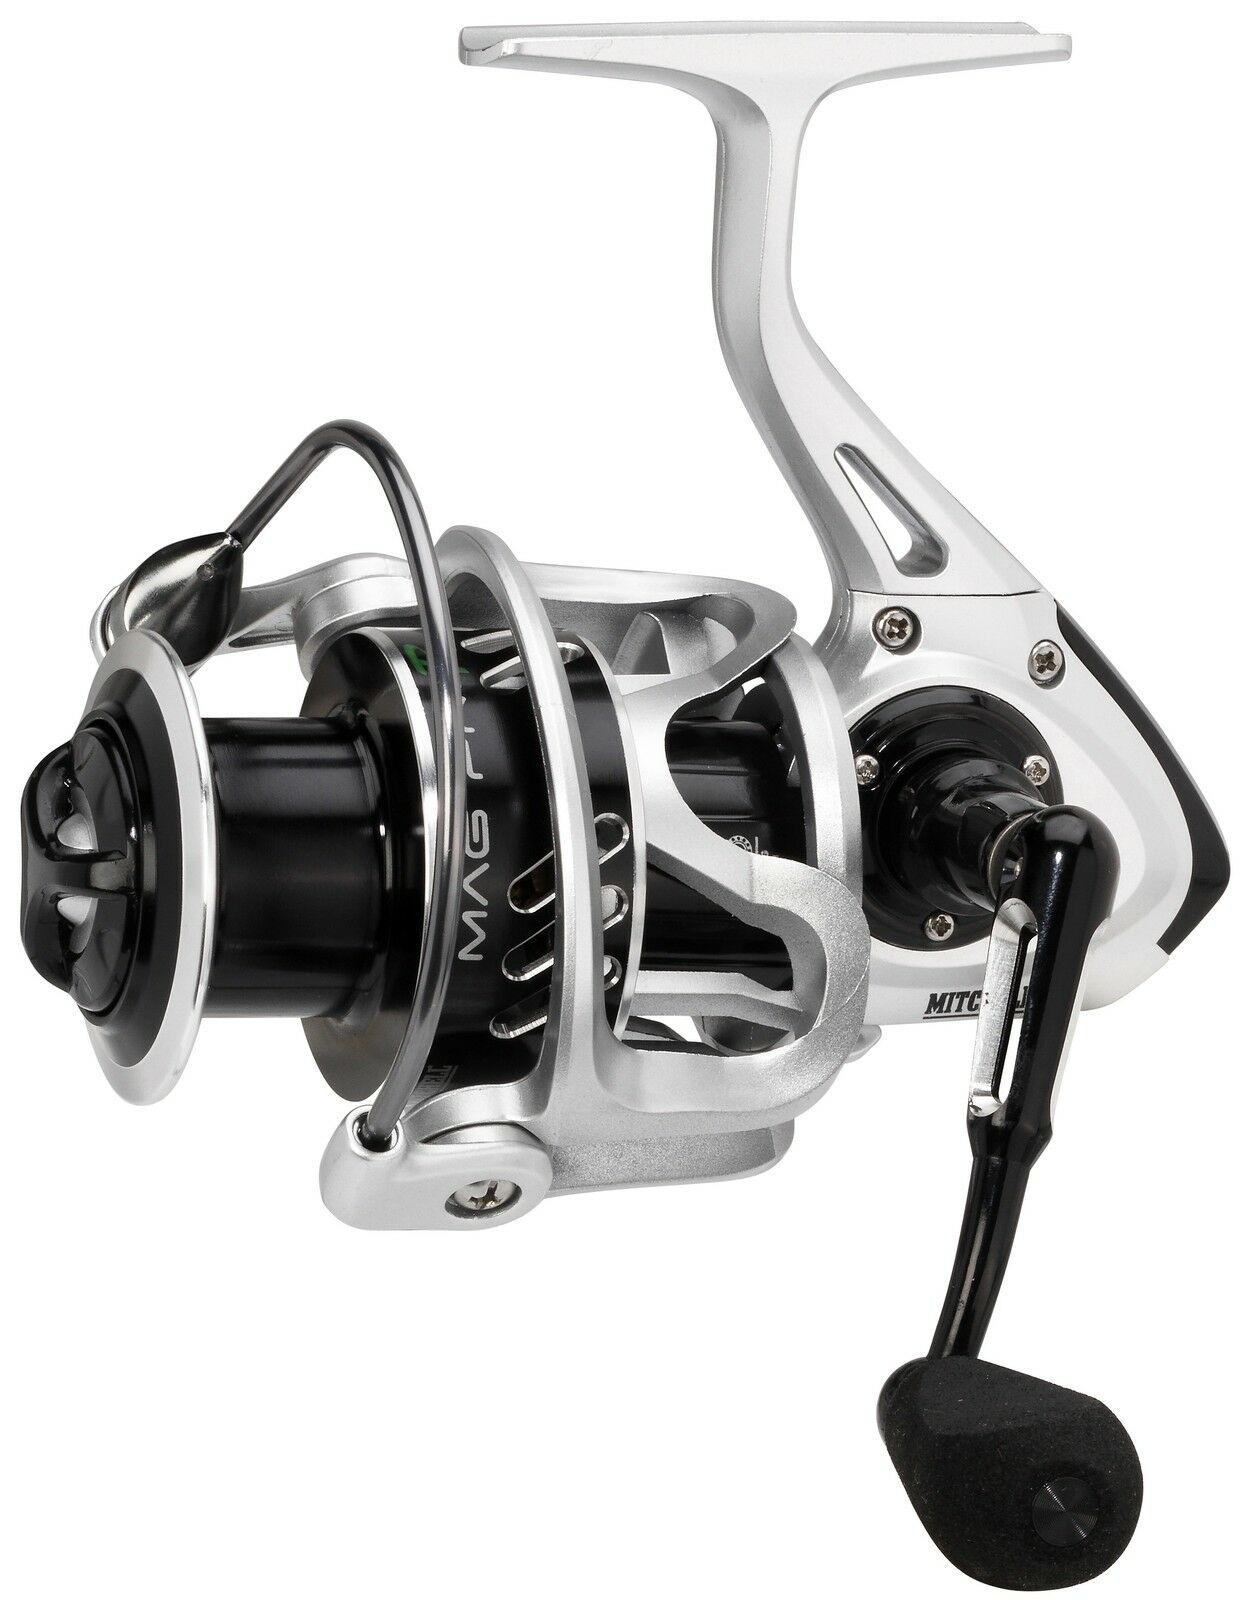 Mitchell Mag Pro R Rolle Angelrolle Stationärrolle Reel Angelrolle